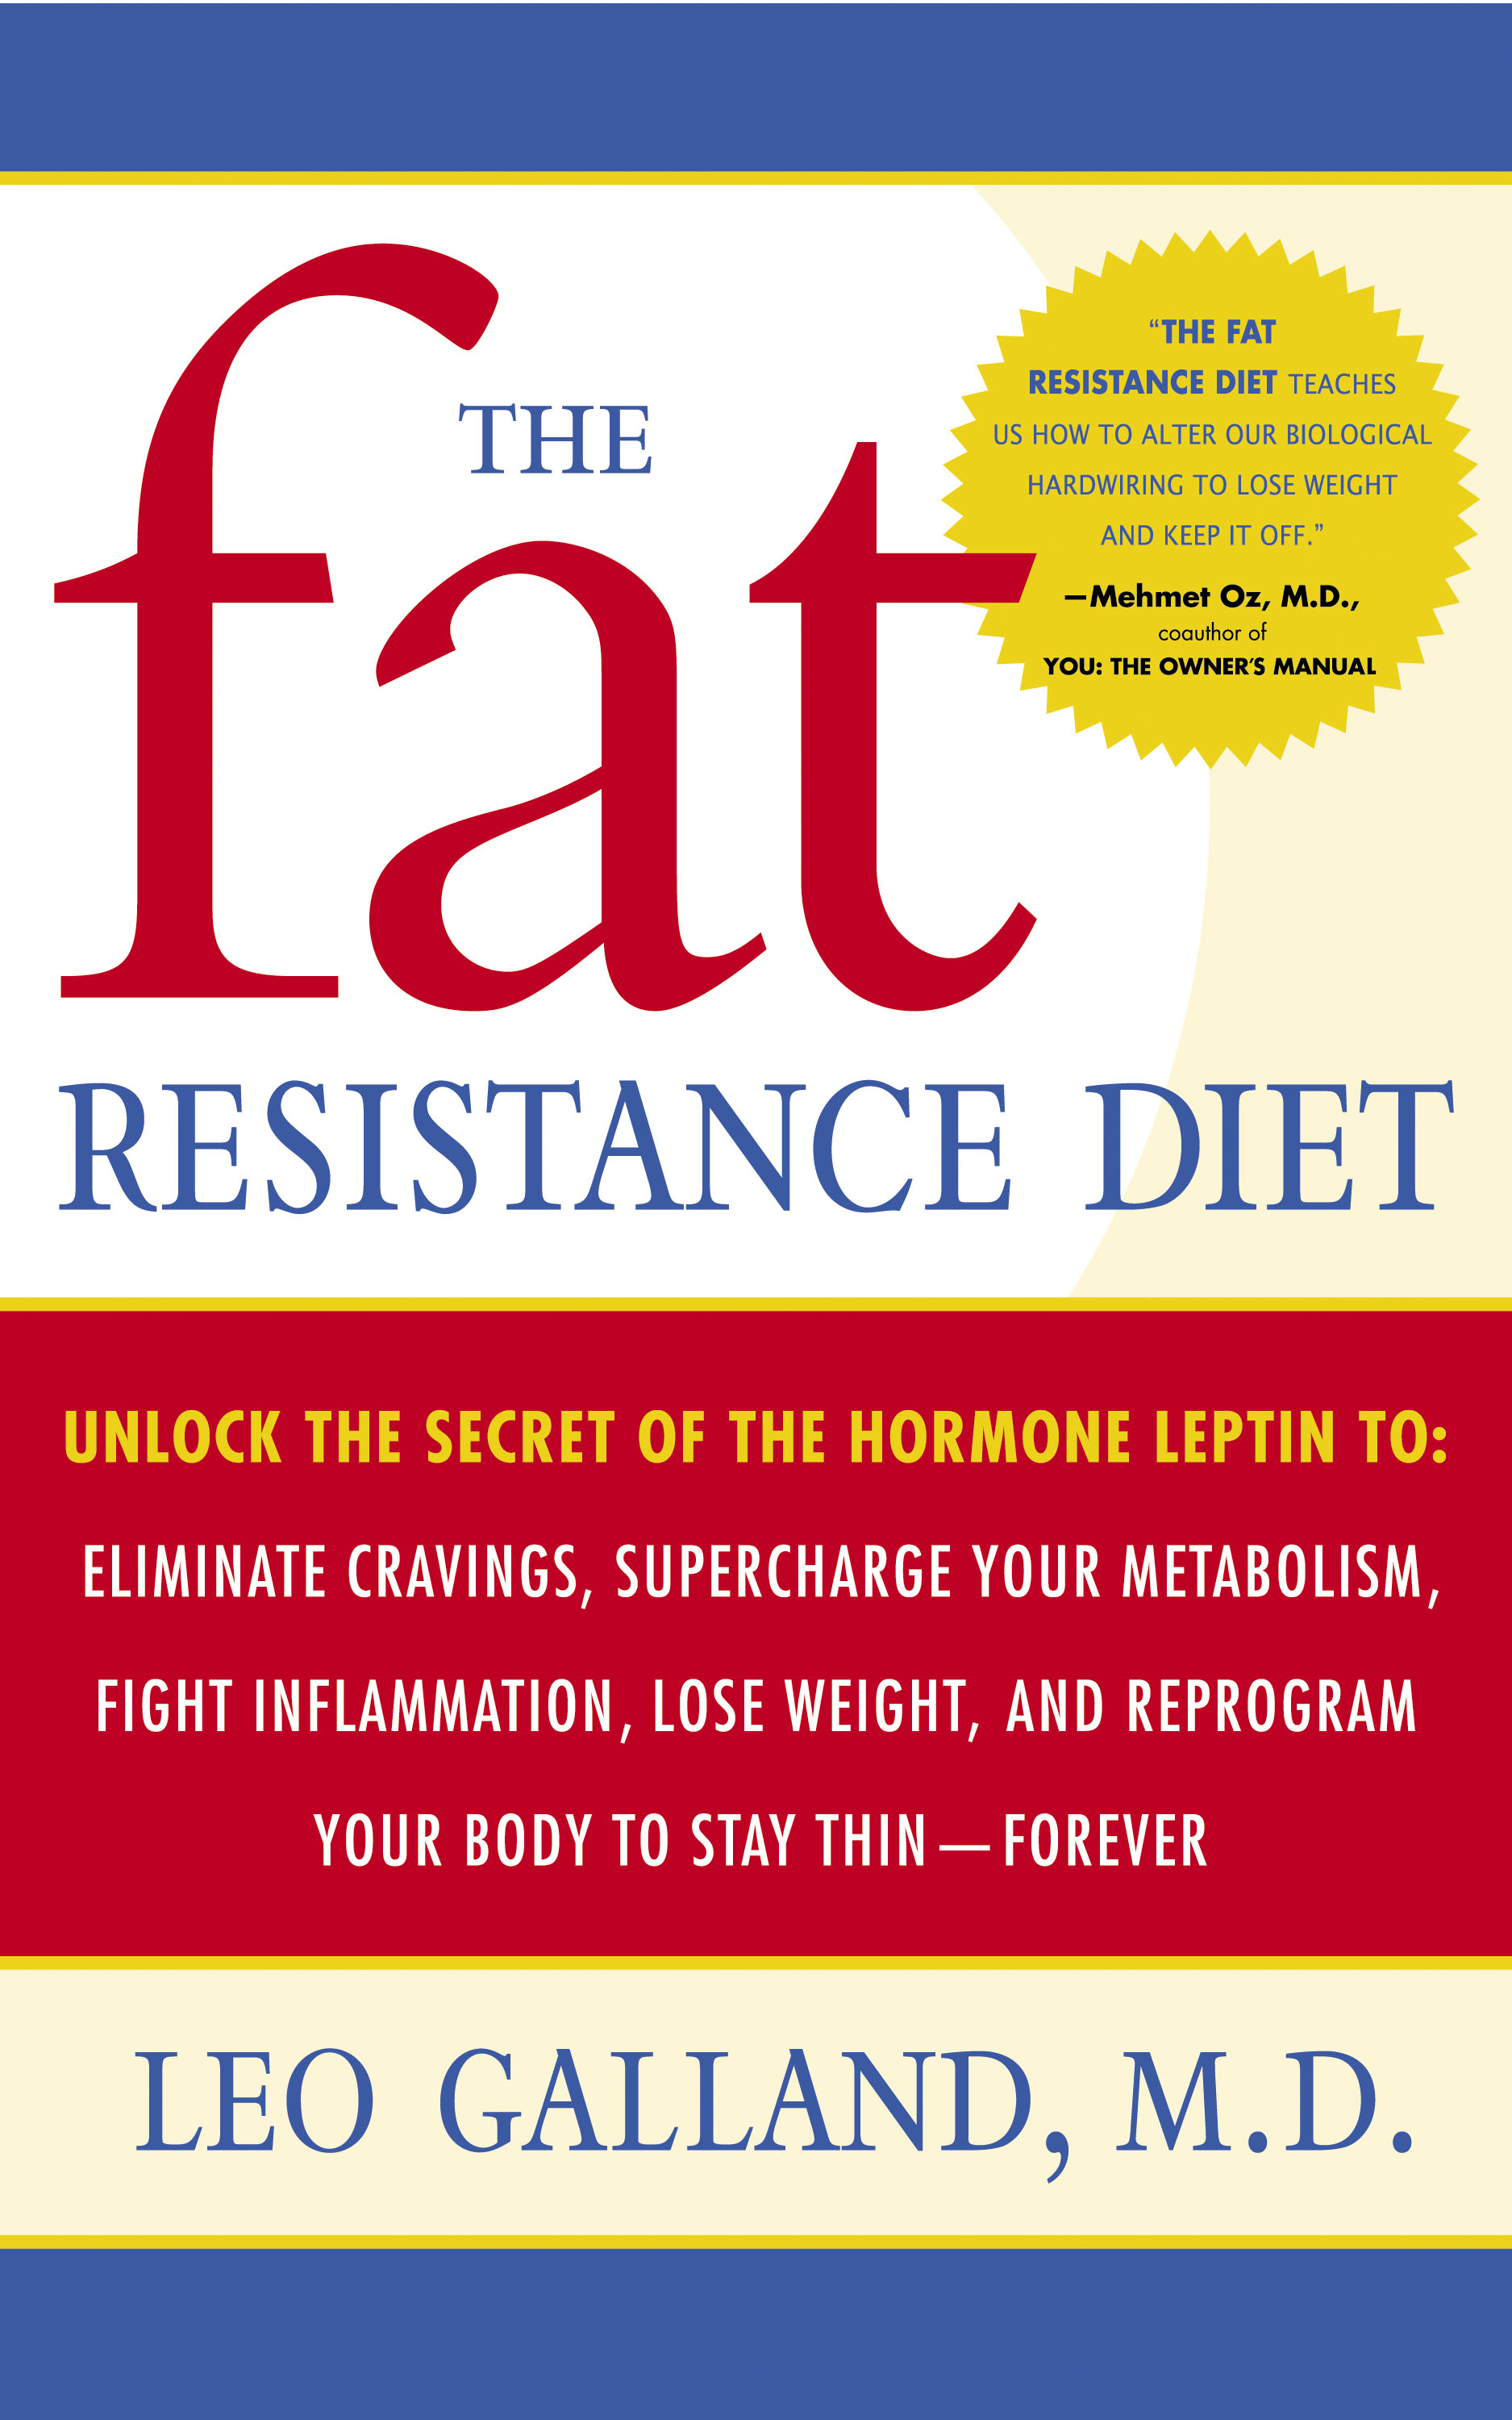 Diet Plan Increases Activity Of Leptin, The Hormone